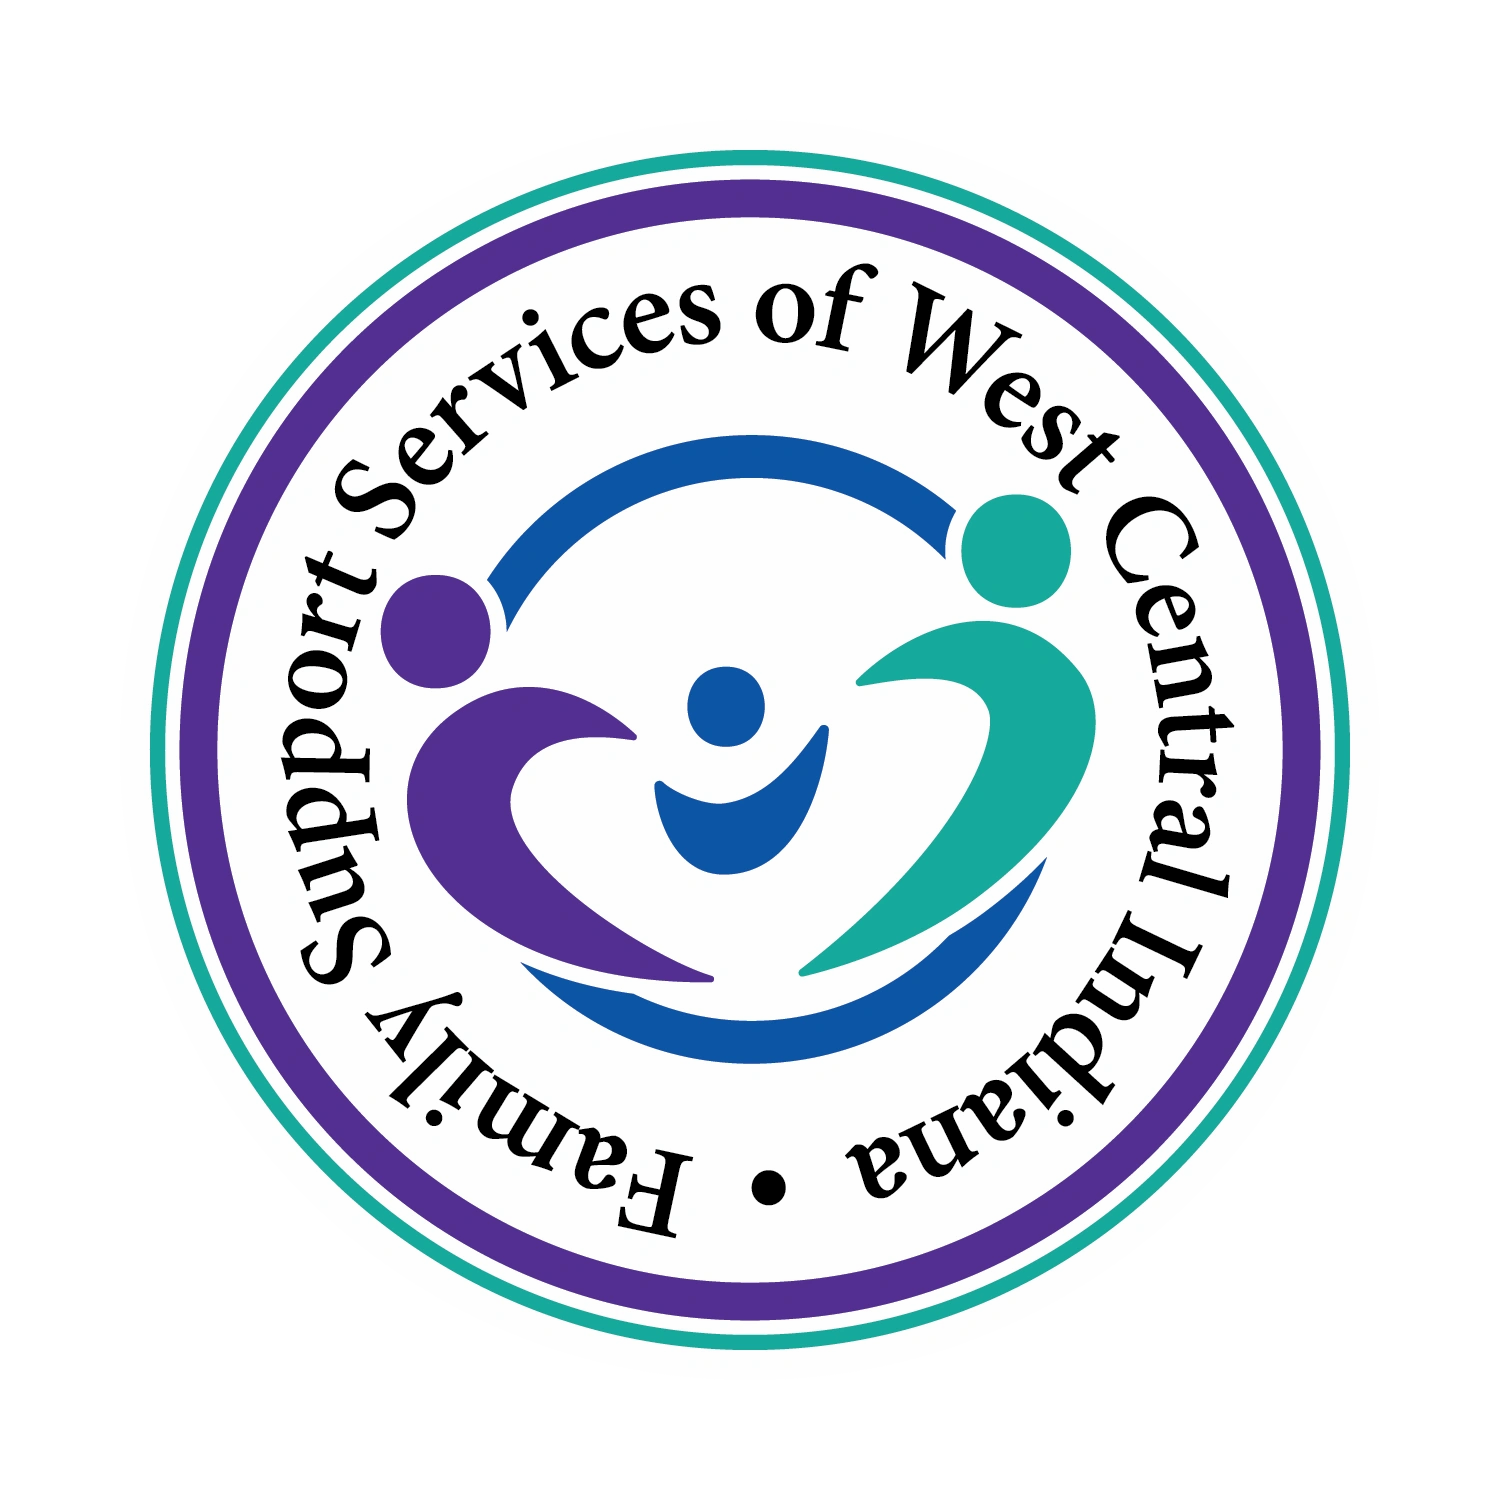 Family Support Services of West Central Indiana - Home